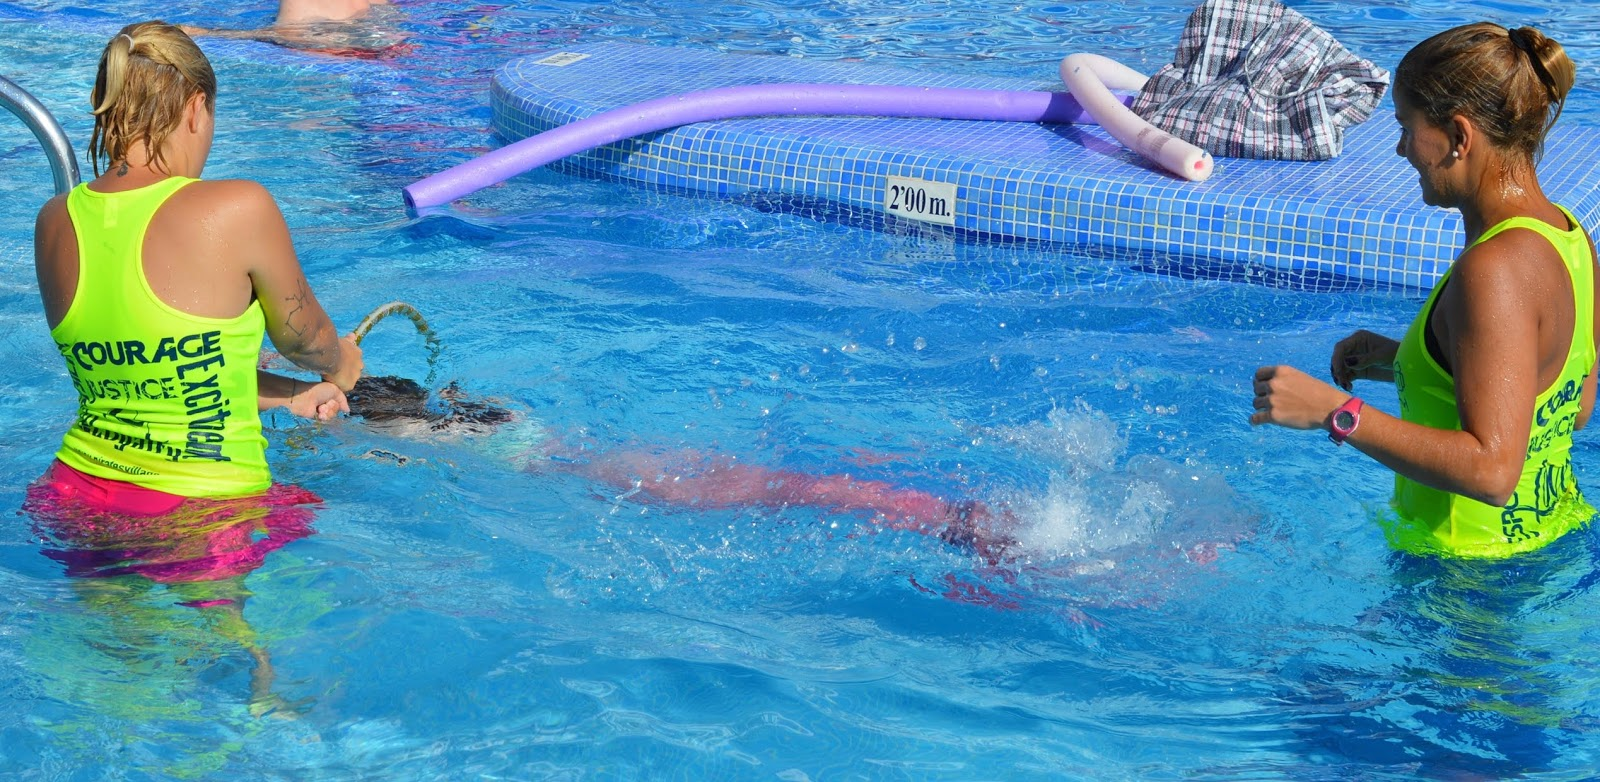 Pirate Swimming Pools and Mermaid Lessons at Pirates Village, Majorca - catching jellyfish